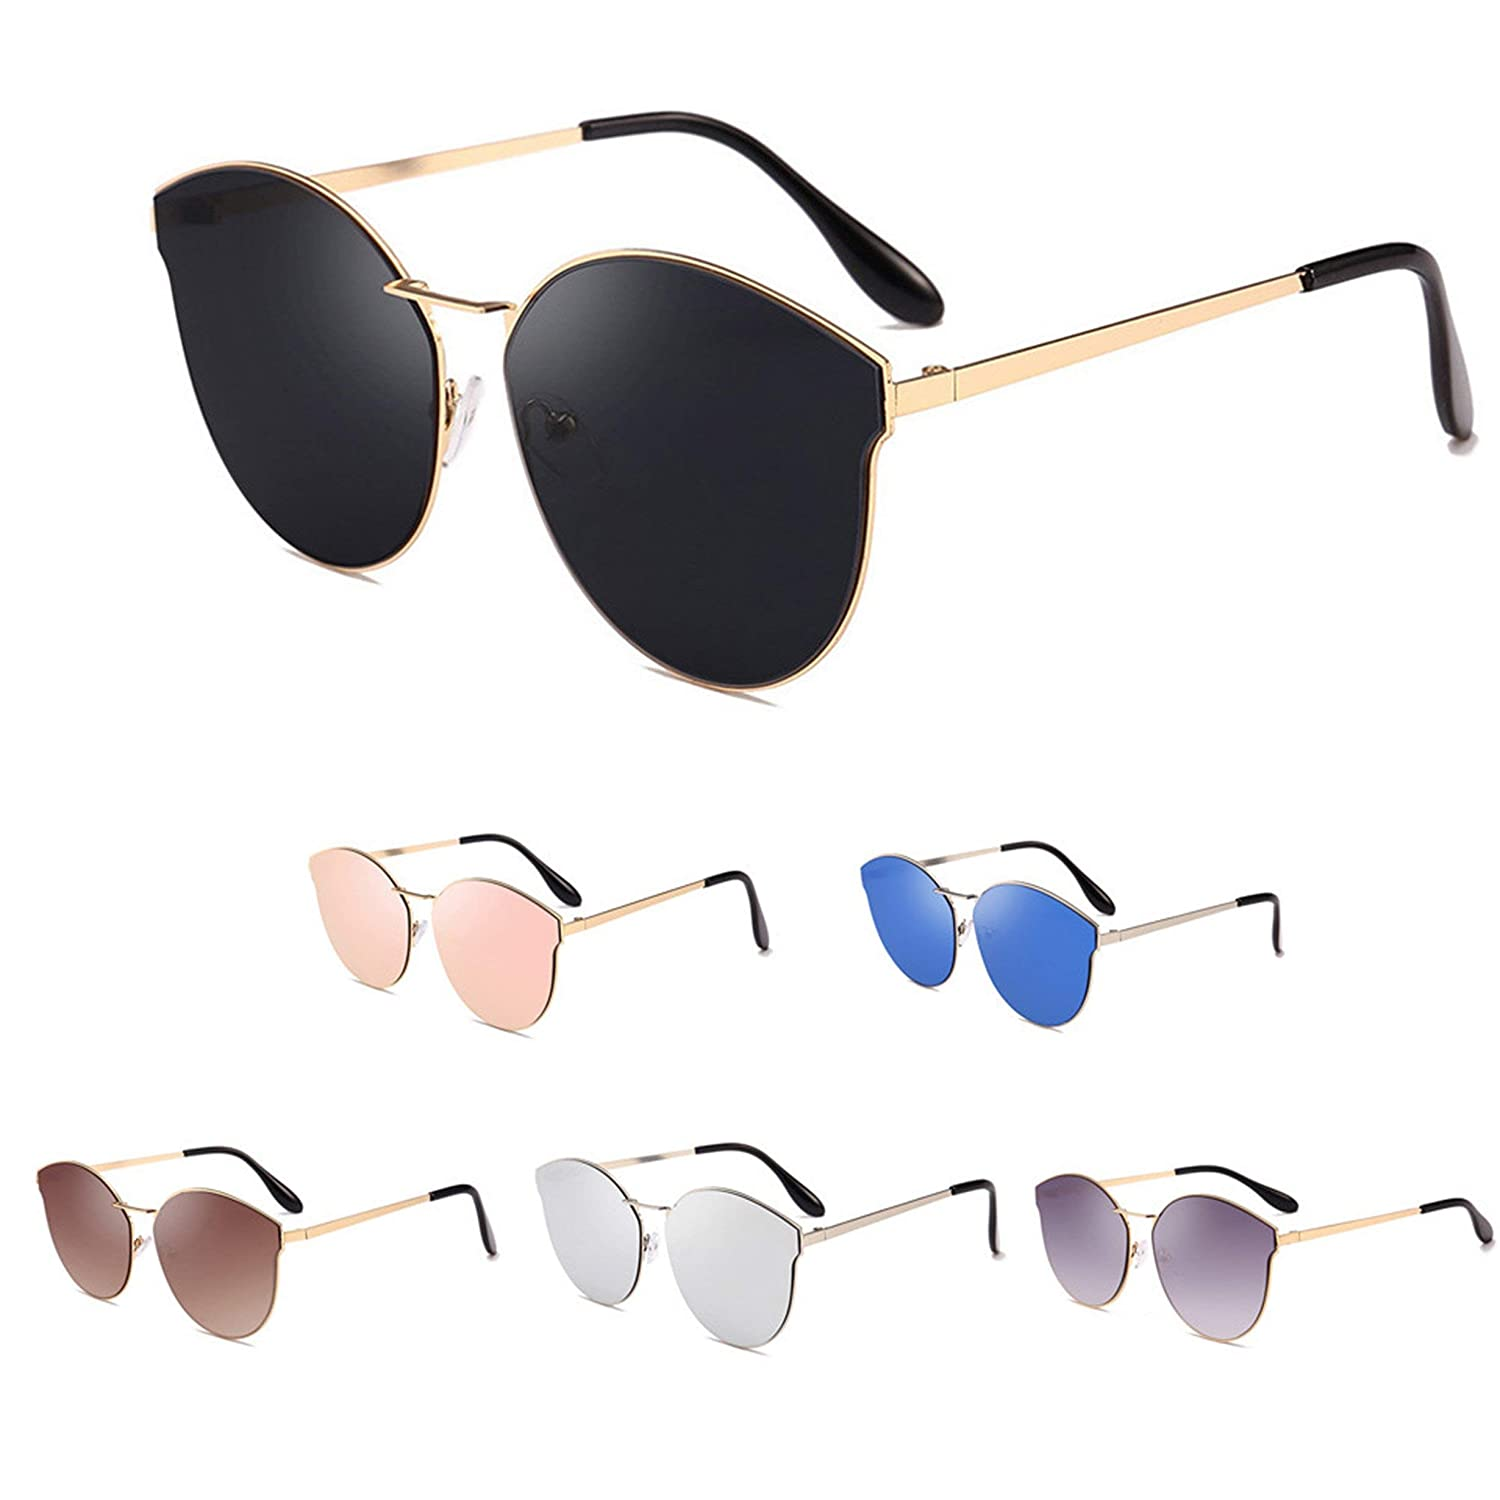 b4c0db0c696 Amazon.com  HOT SALE! BYEEE Lucky your eyes - Retro Sunglasses ...